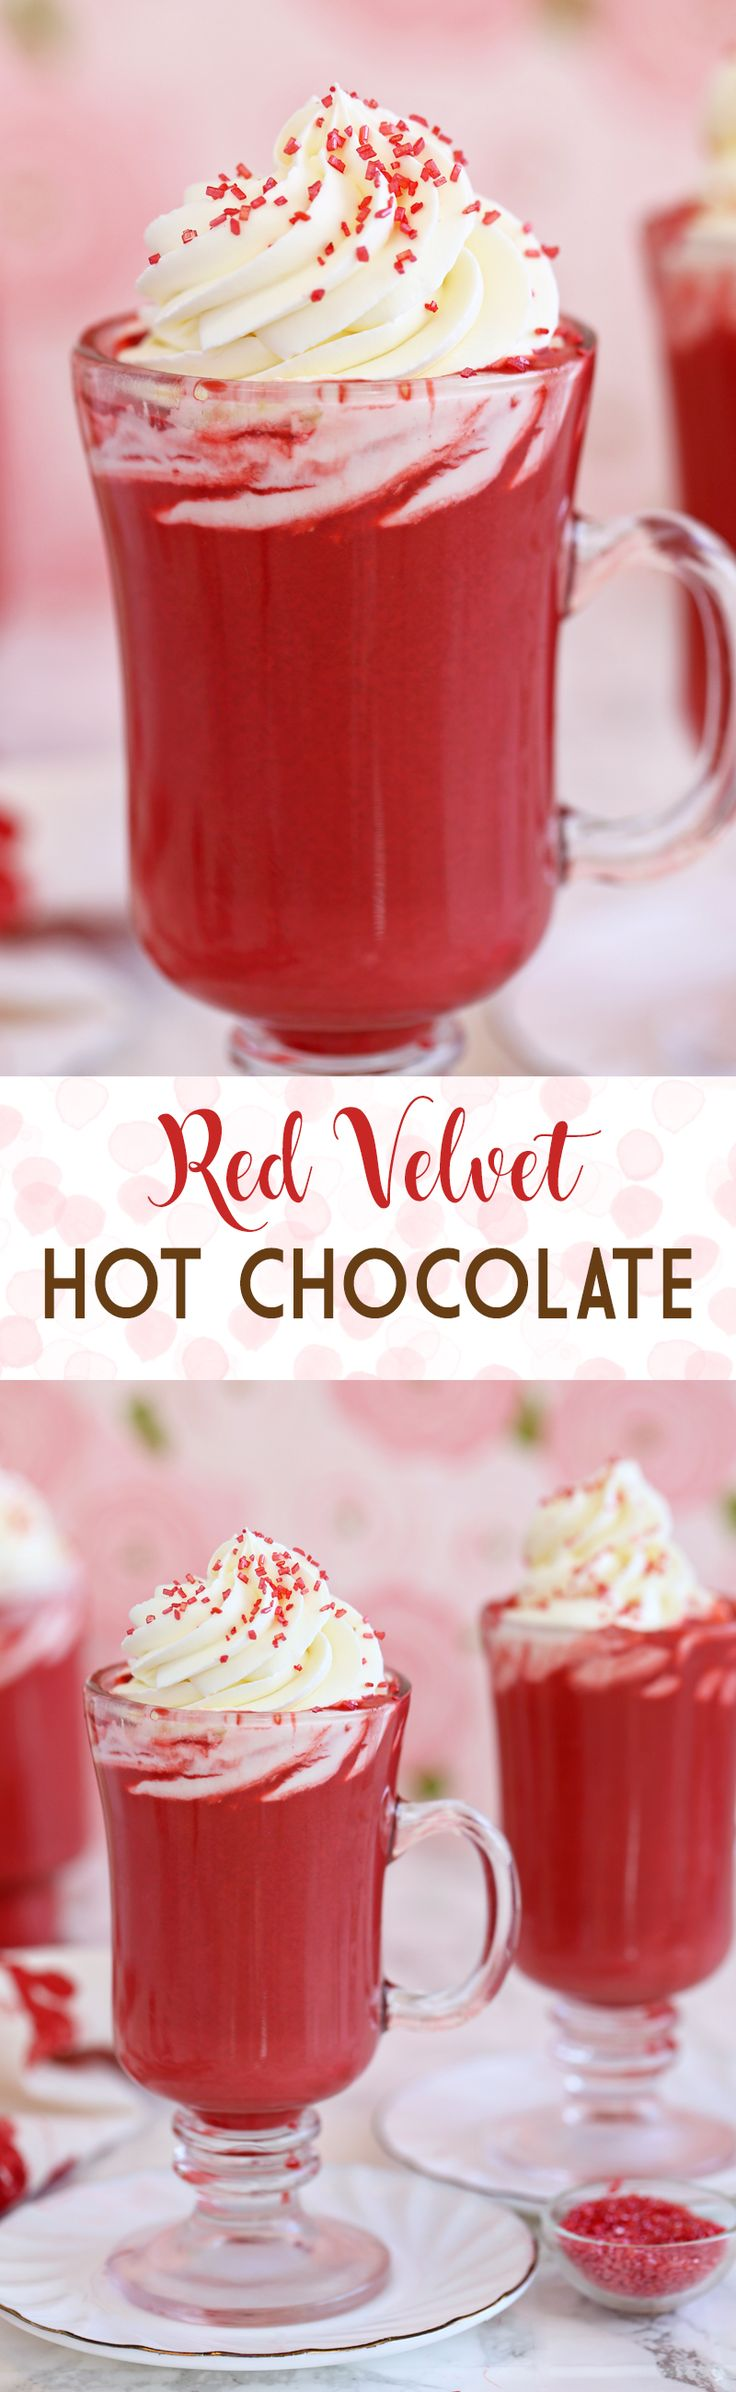 Red Velvet Hot Chocolate - with cream cheese whipped cream!